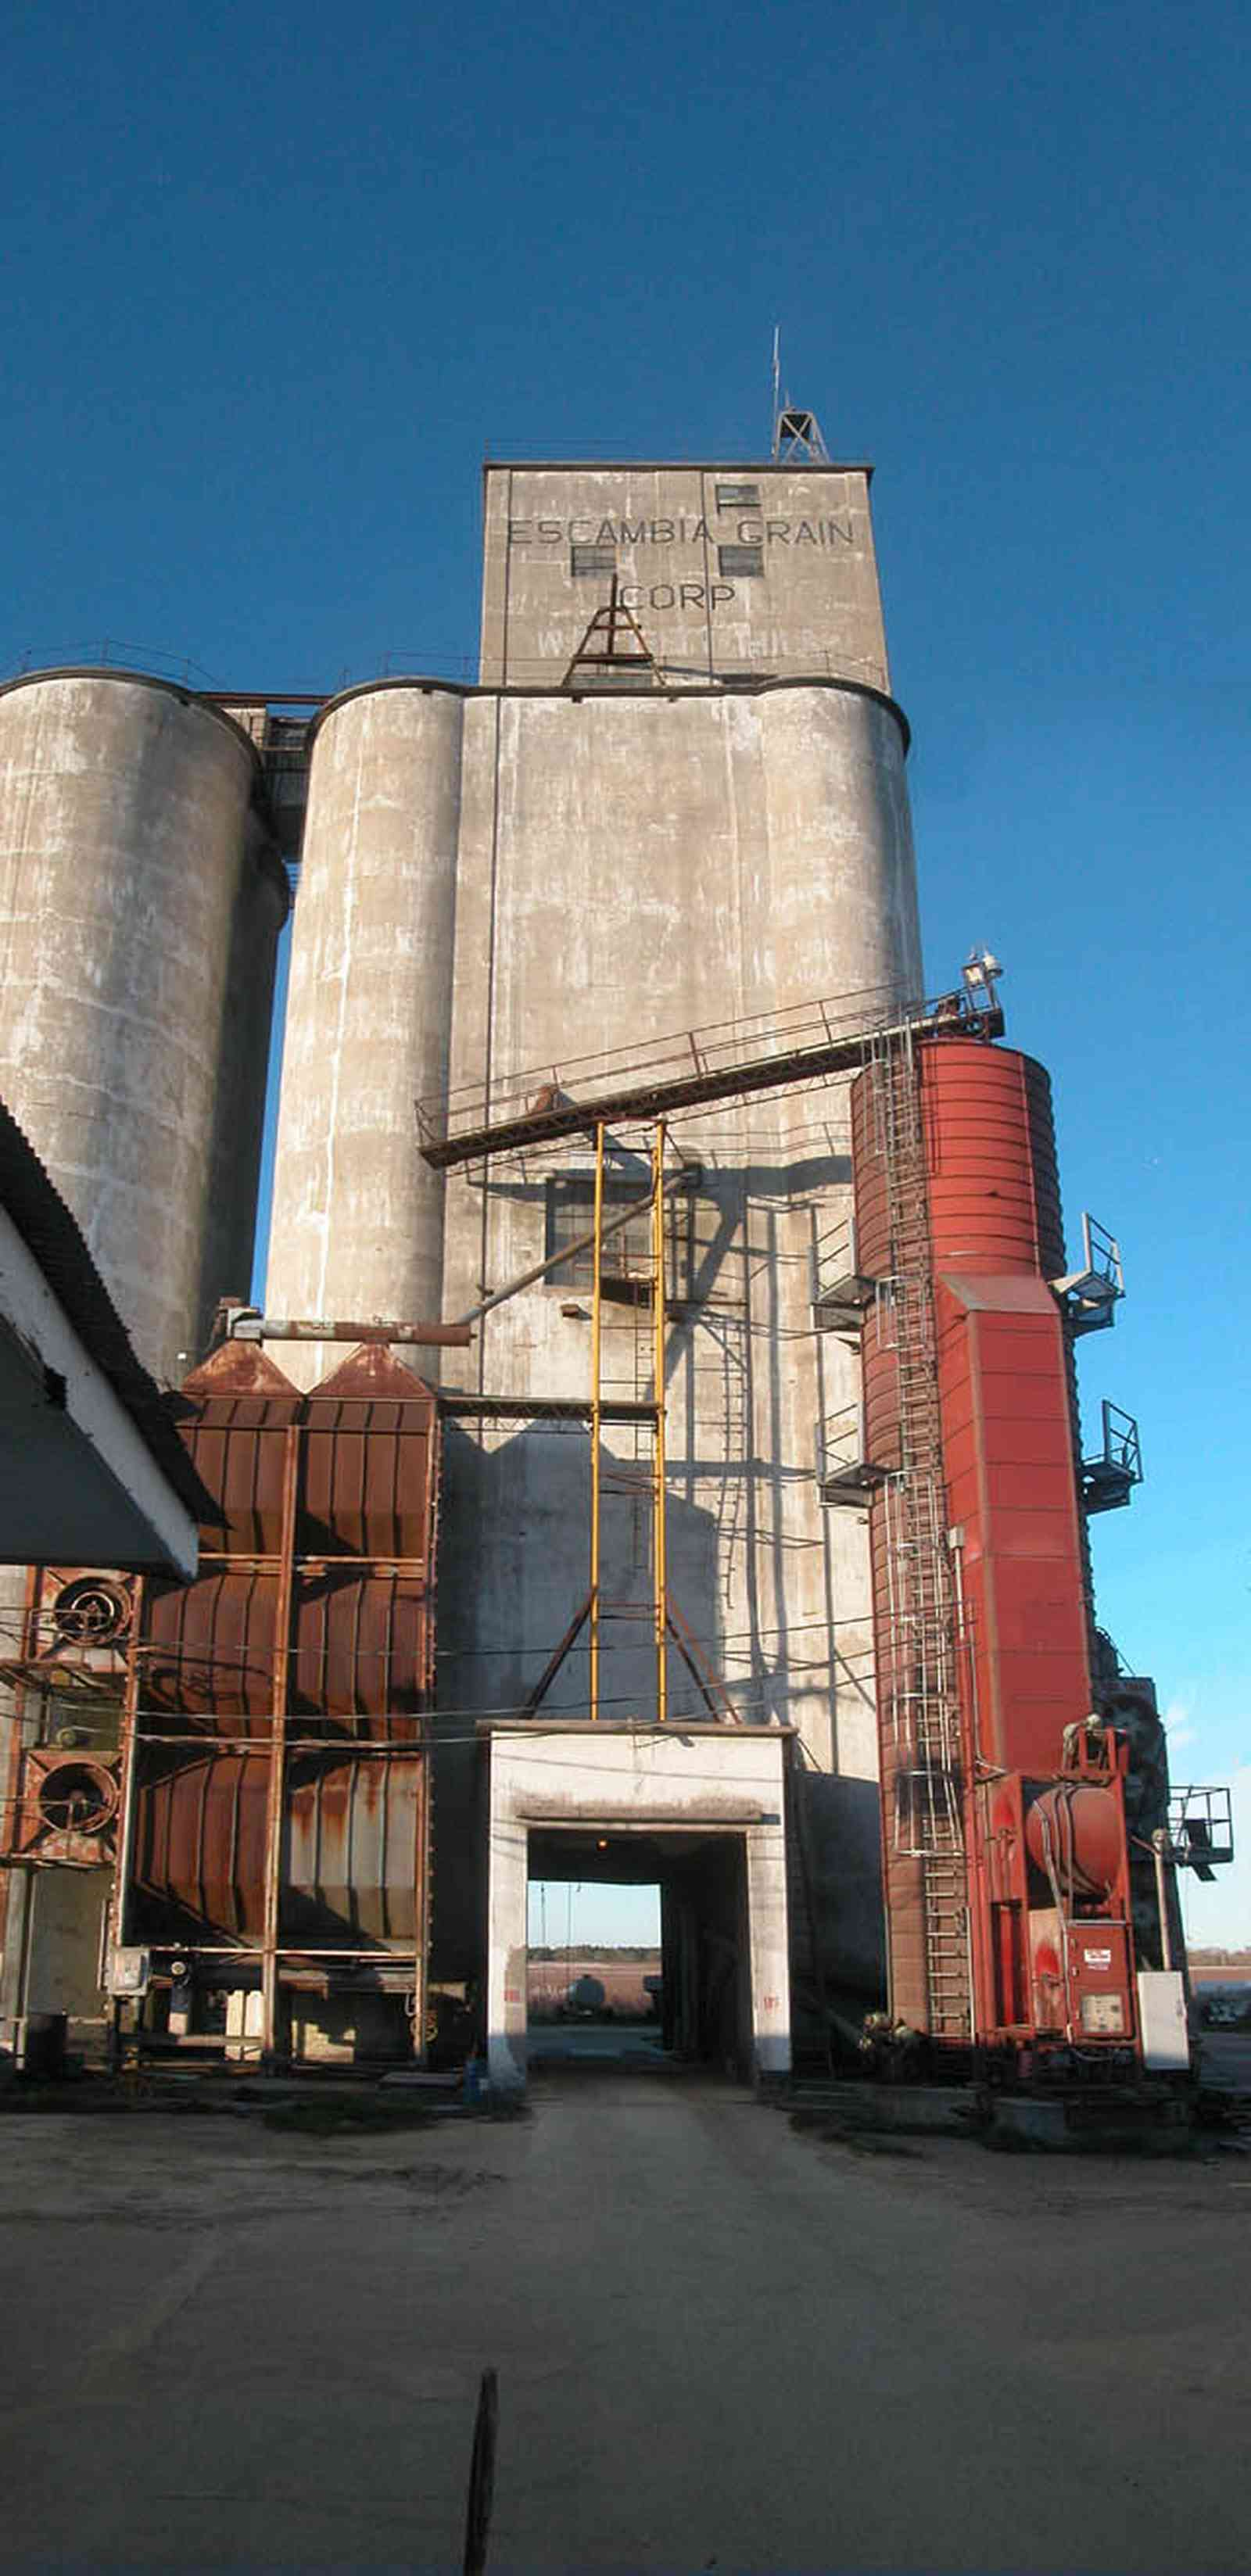 Walnut-Hill:-Escambia-Grain-Corp_05.jpg:  grain elevator, wheat, corn, soy beans, tower, loading dock, farmers, seed, fertilizer